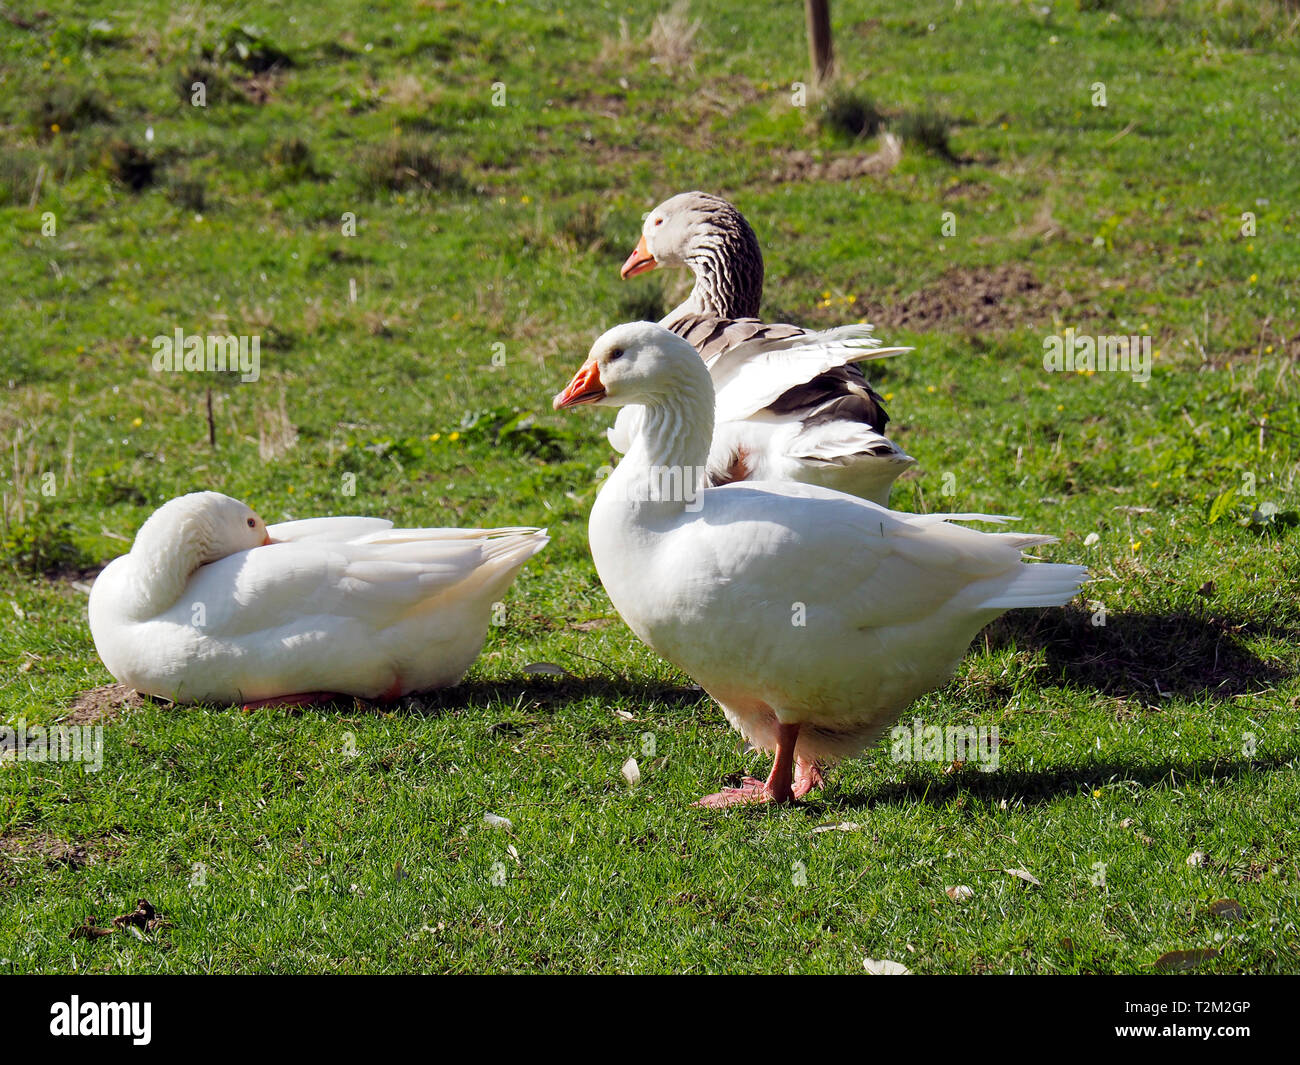 Domestic geese rest in a grassy meadow. Stock Photo